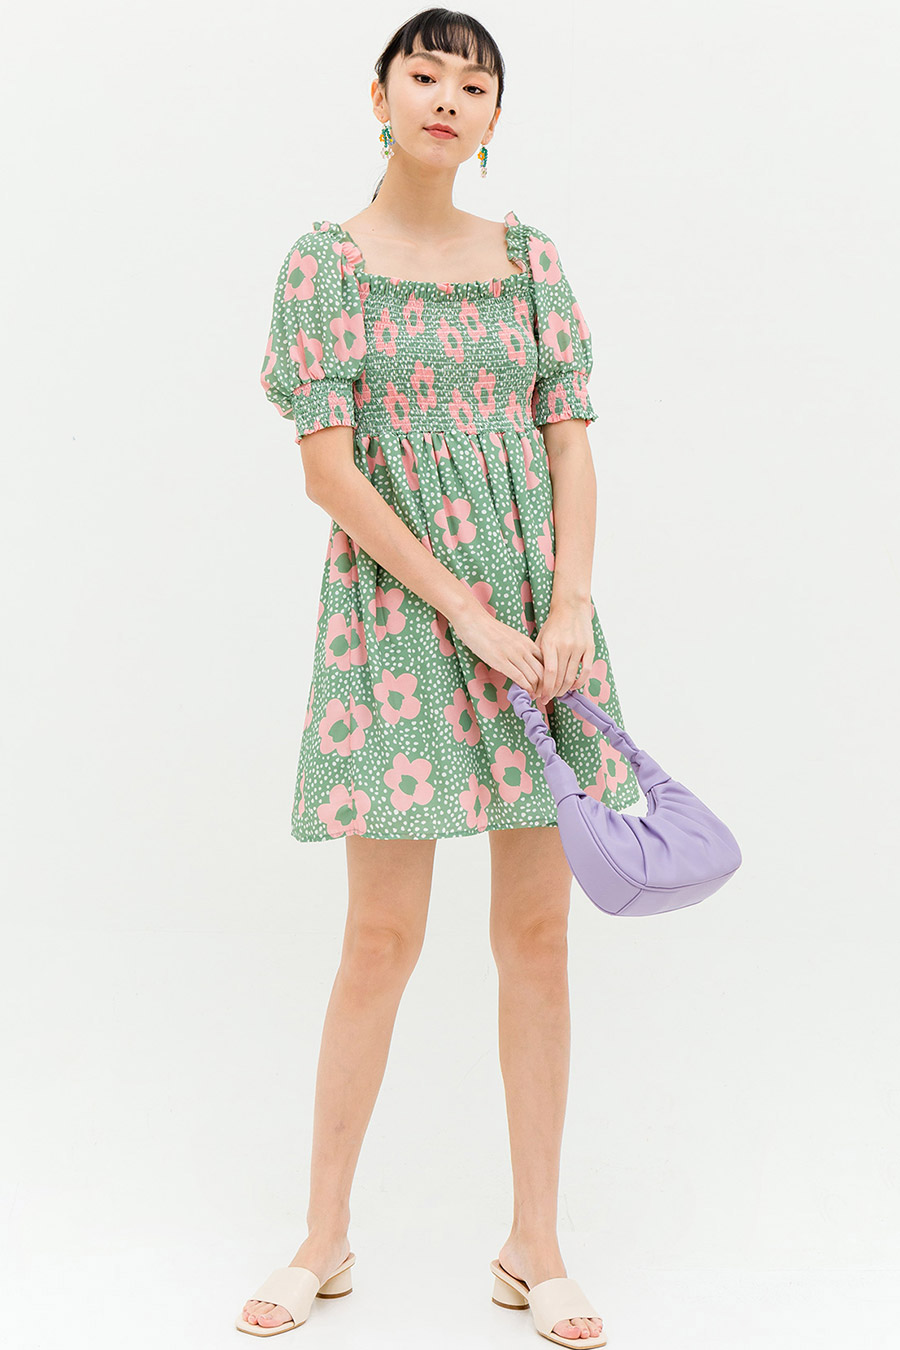 GRIFFITH DRESS - MINT FLEUR